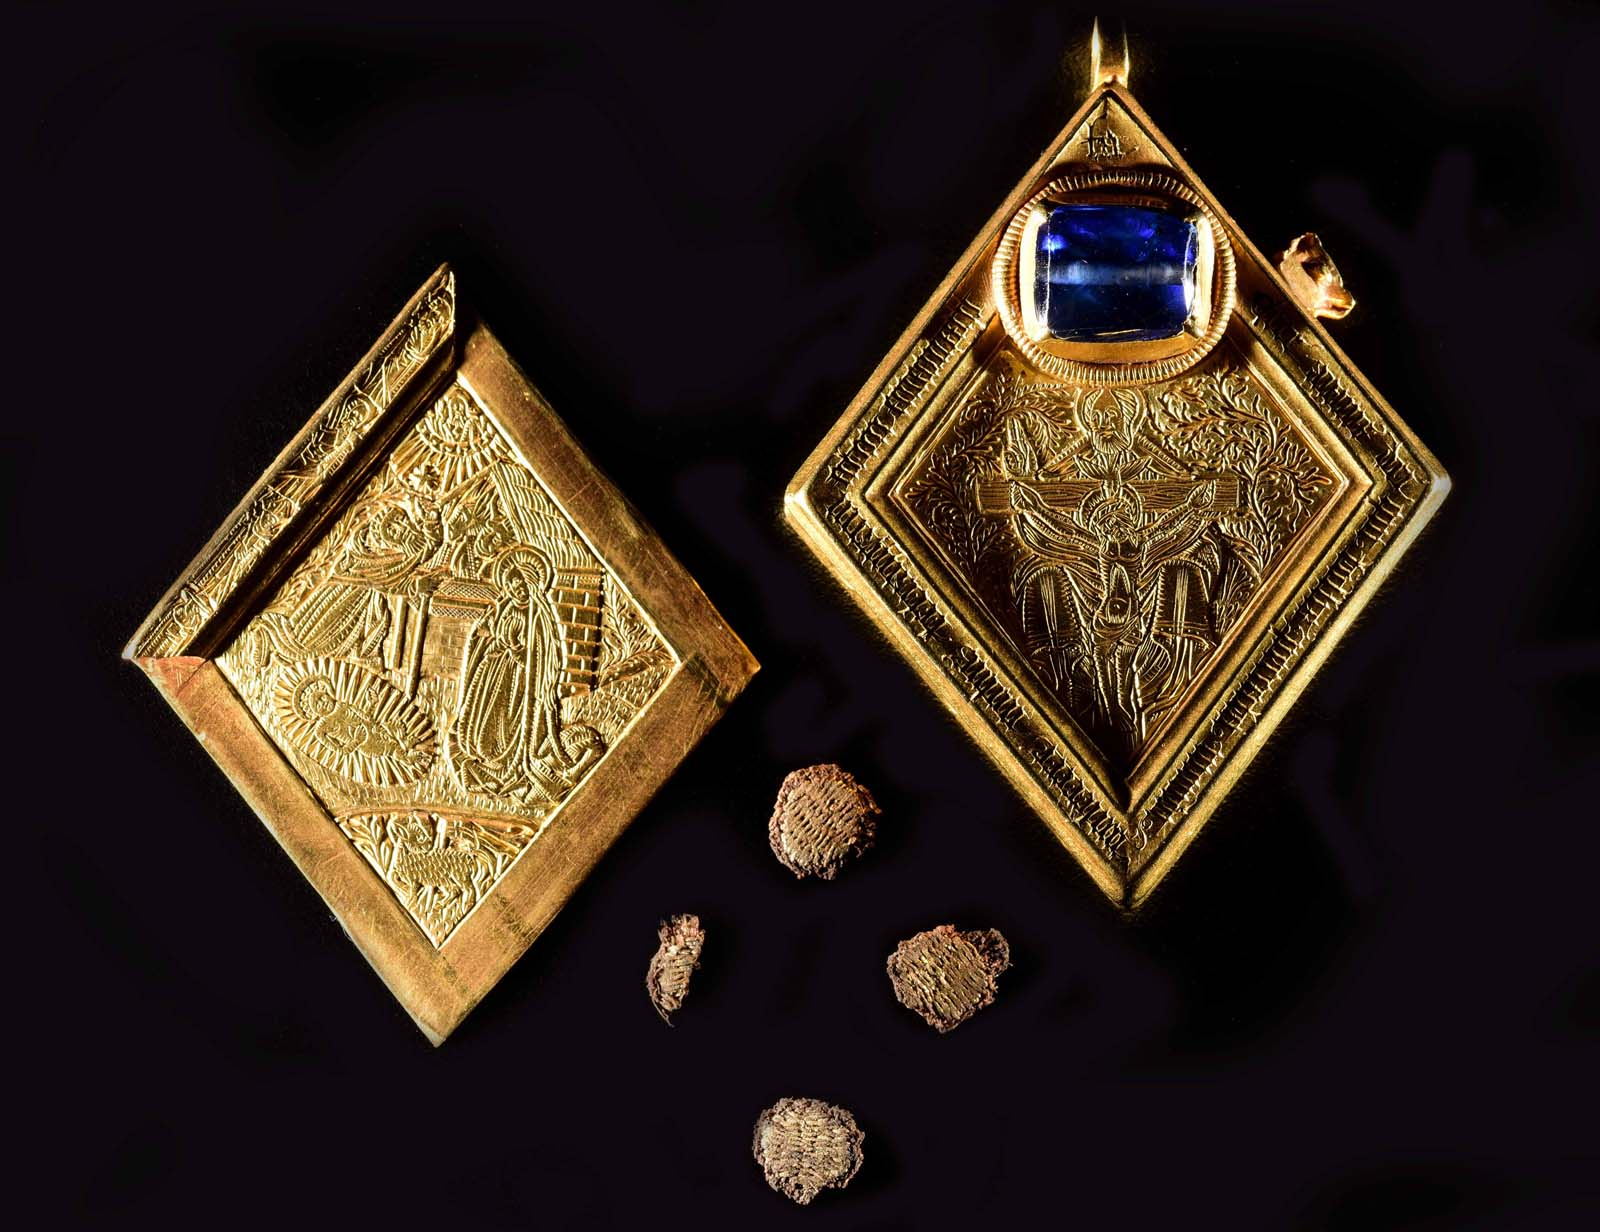 two golden trapezoid-shaped jewels with interior engraving detail